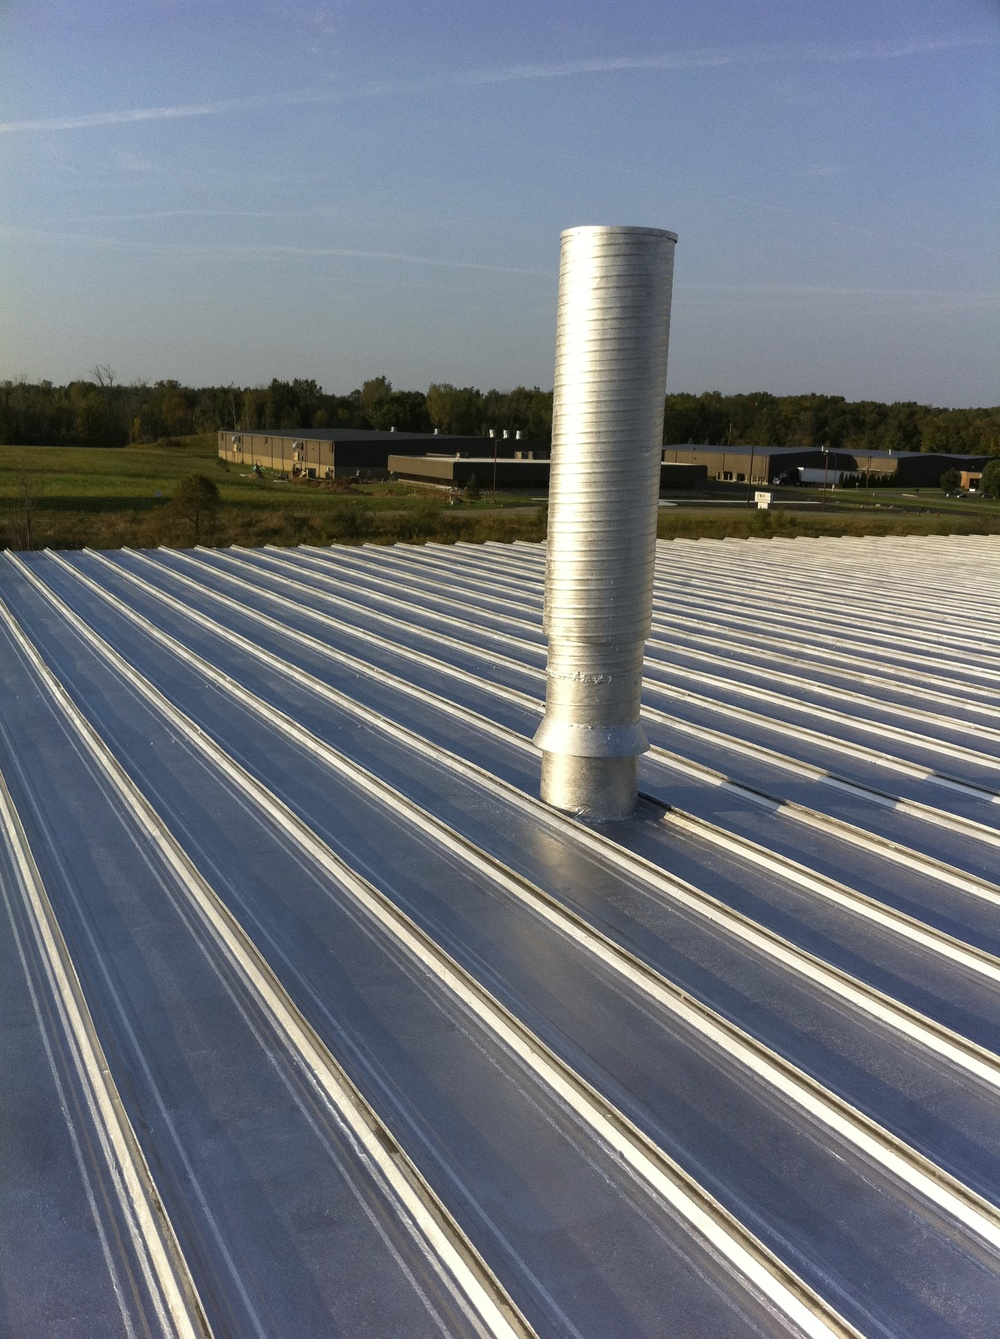 Aluminum metal roof coating for this standing seam metal roof.  Prior to the sealing and coating process there was a leak at this roof pipe, it was sealed prior to coating to stop metal roof leaks